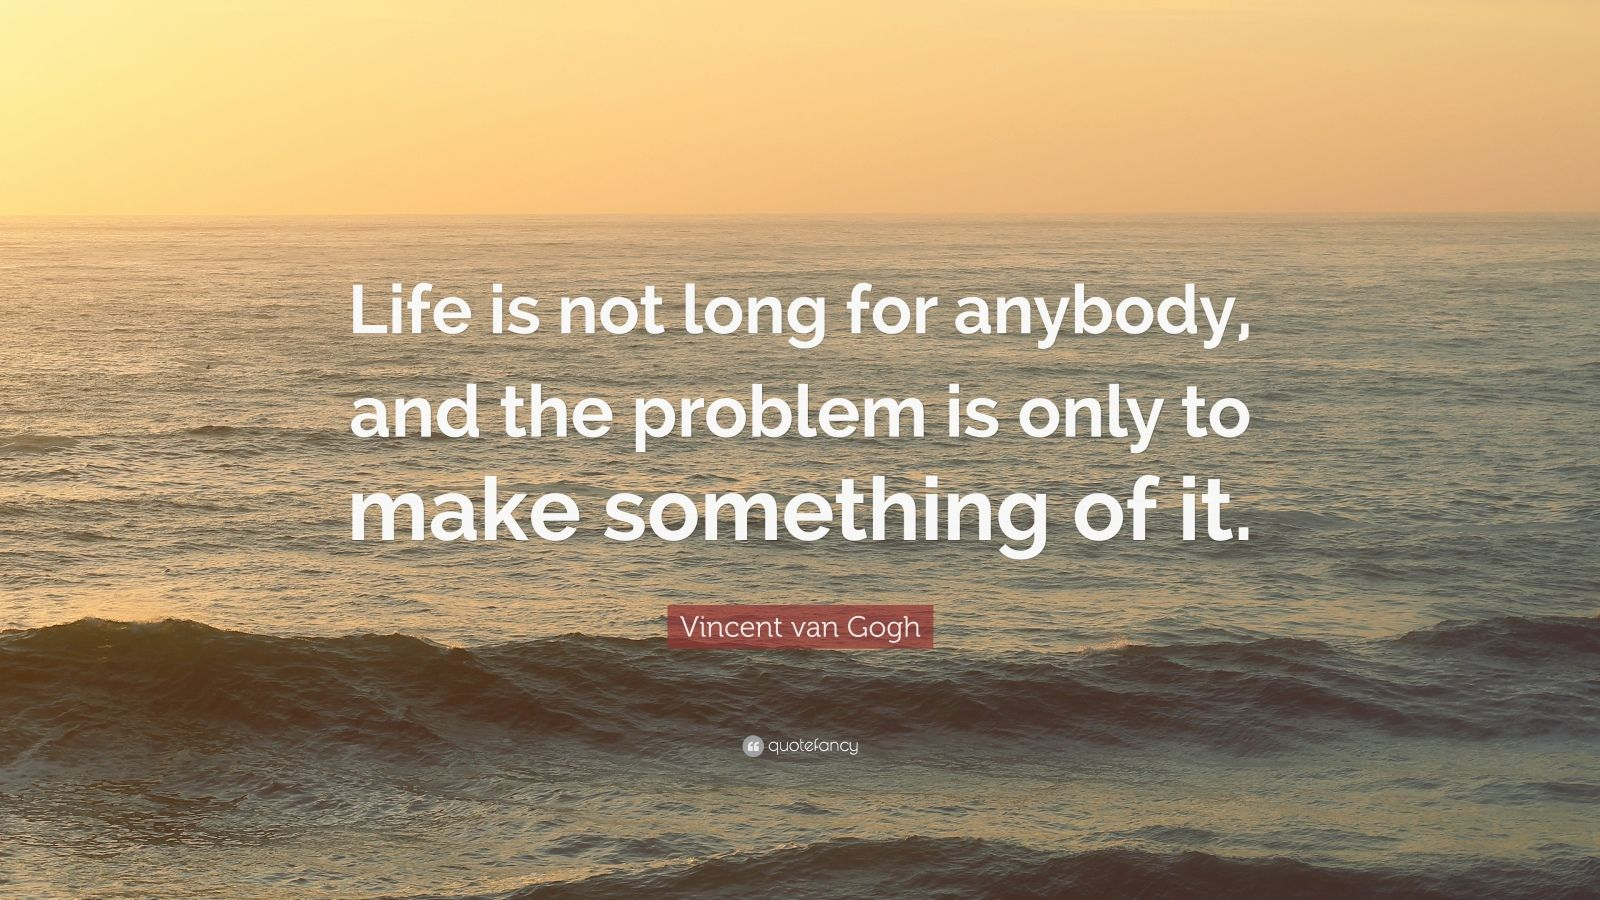 """Vincent van Gogh Quote: """"Life is not long for anybody, and the problem is only to make something of it."""""""